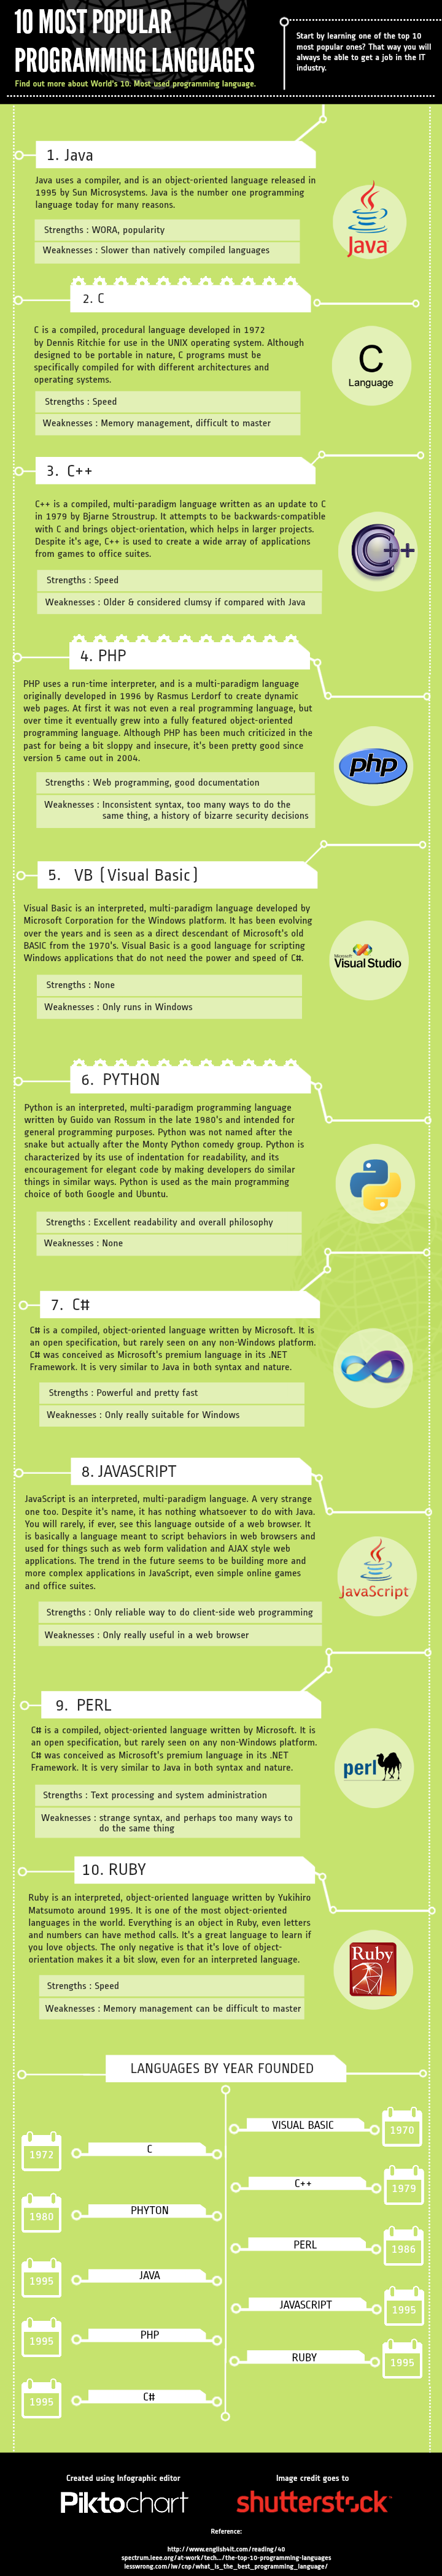 Most-Popular-Programming-Languages